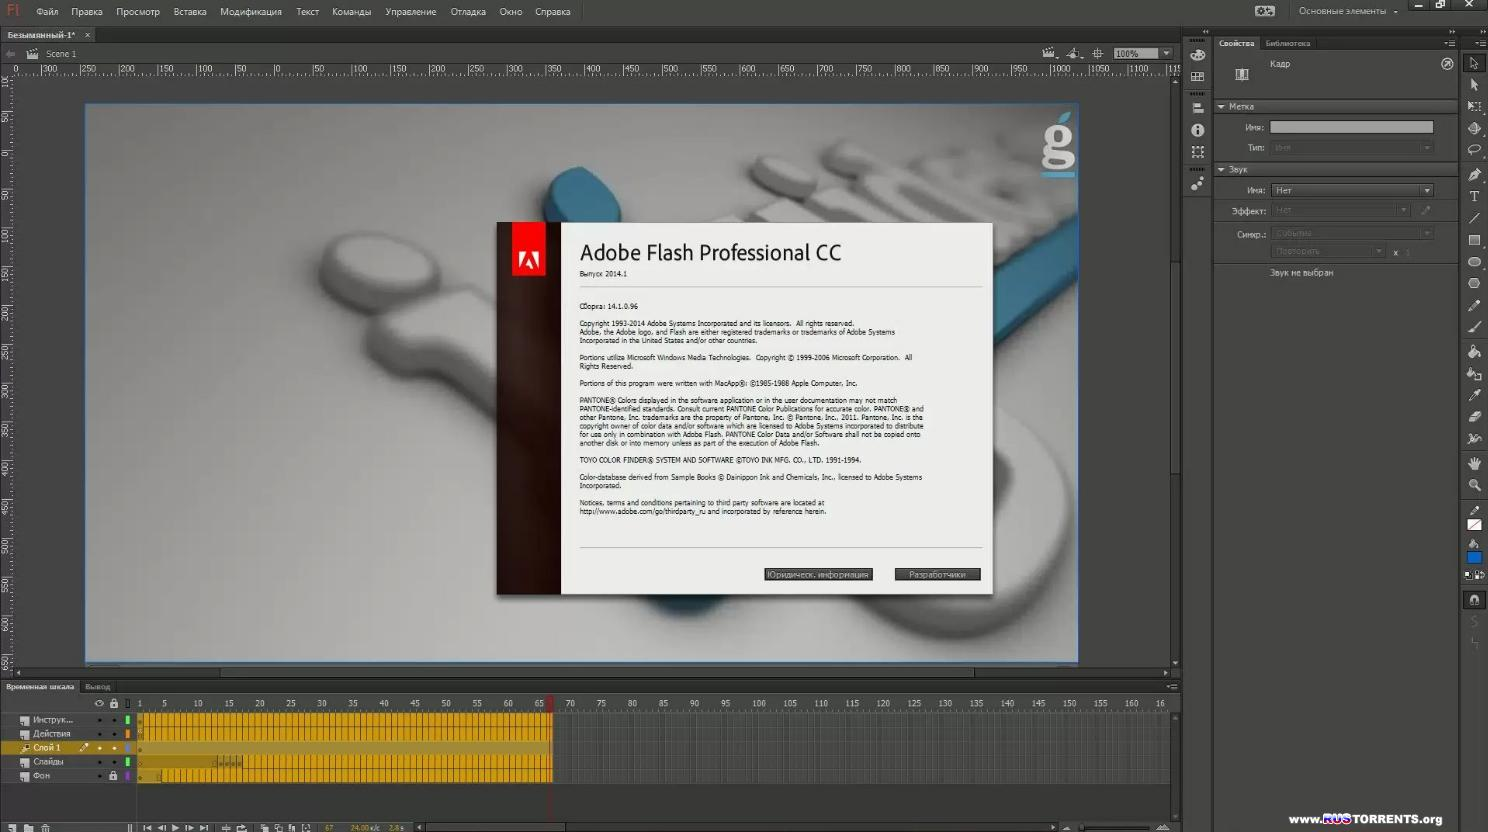 Adobe Flash Professional CC 2014.1 14.1.0.96 RePack by Diakov